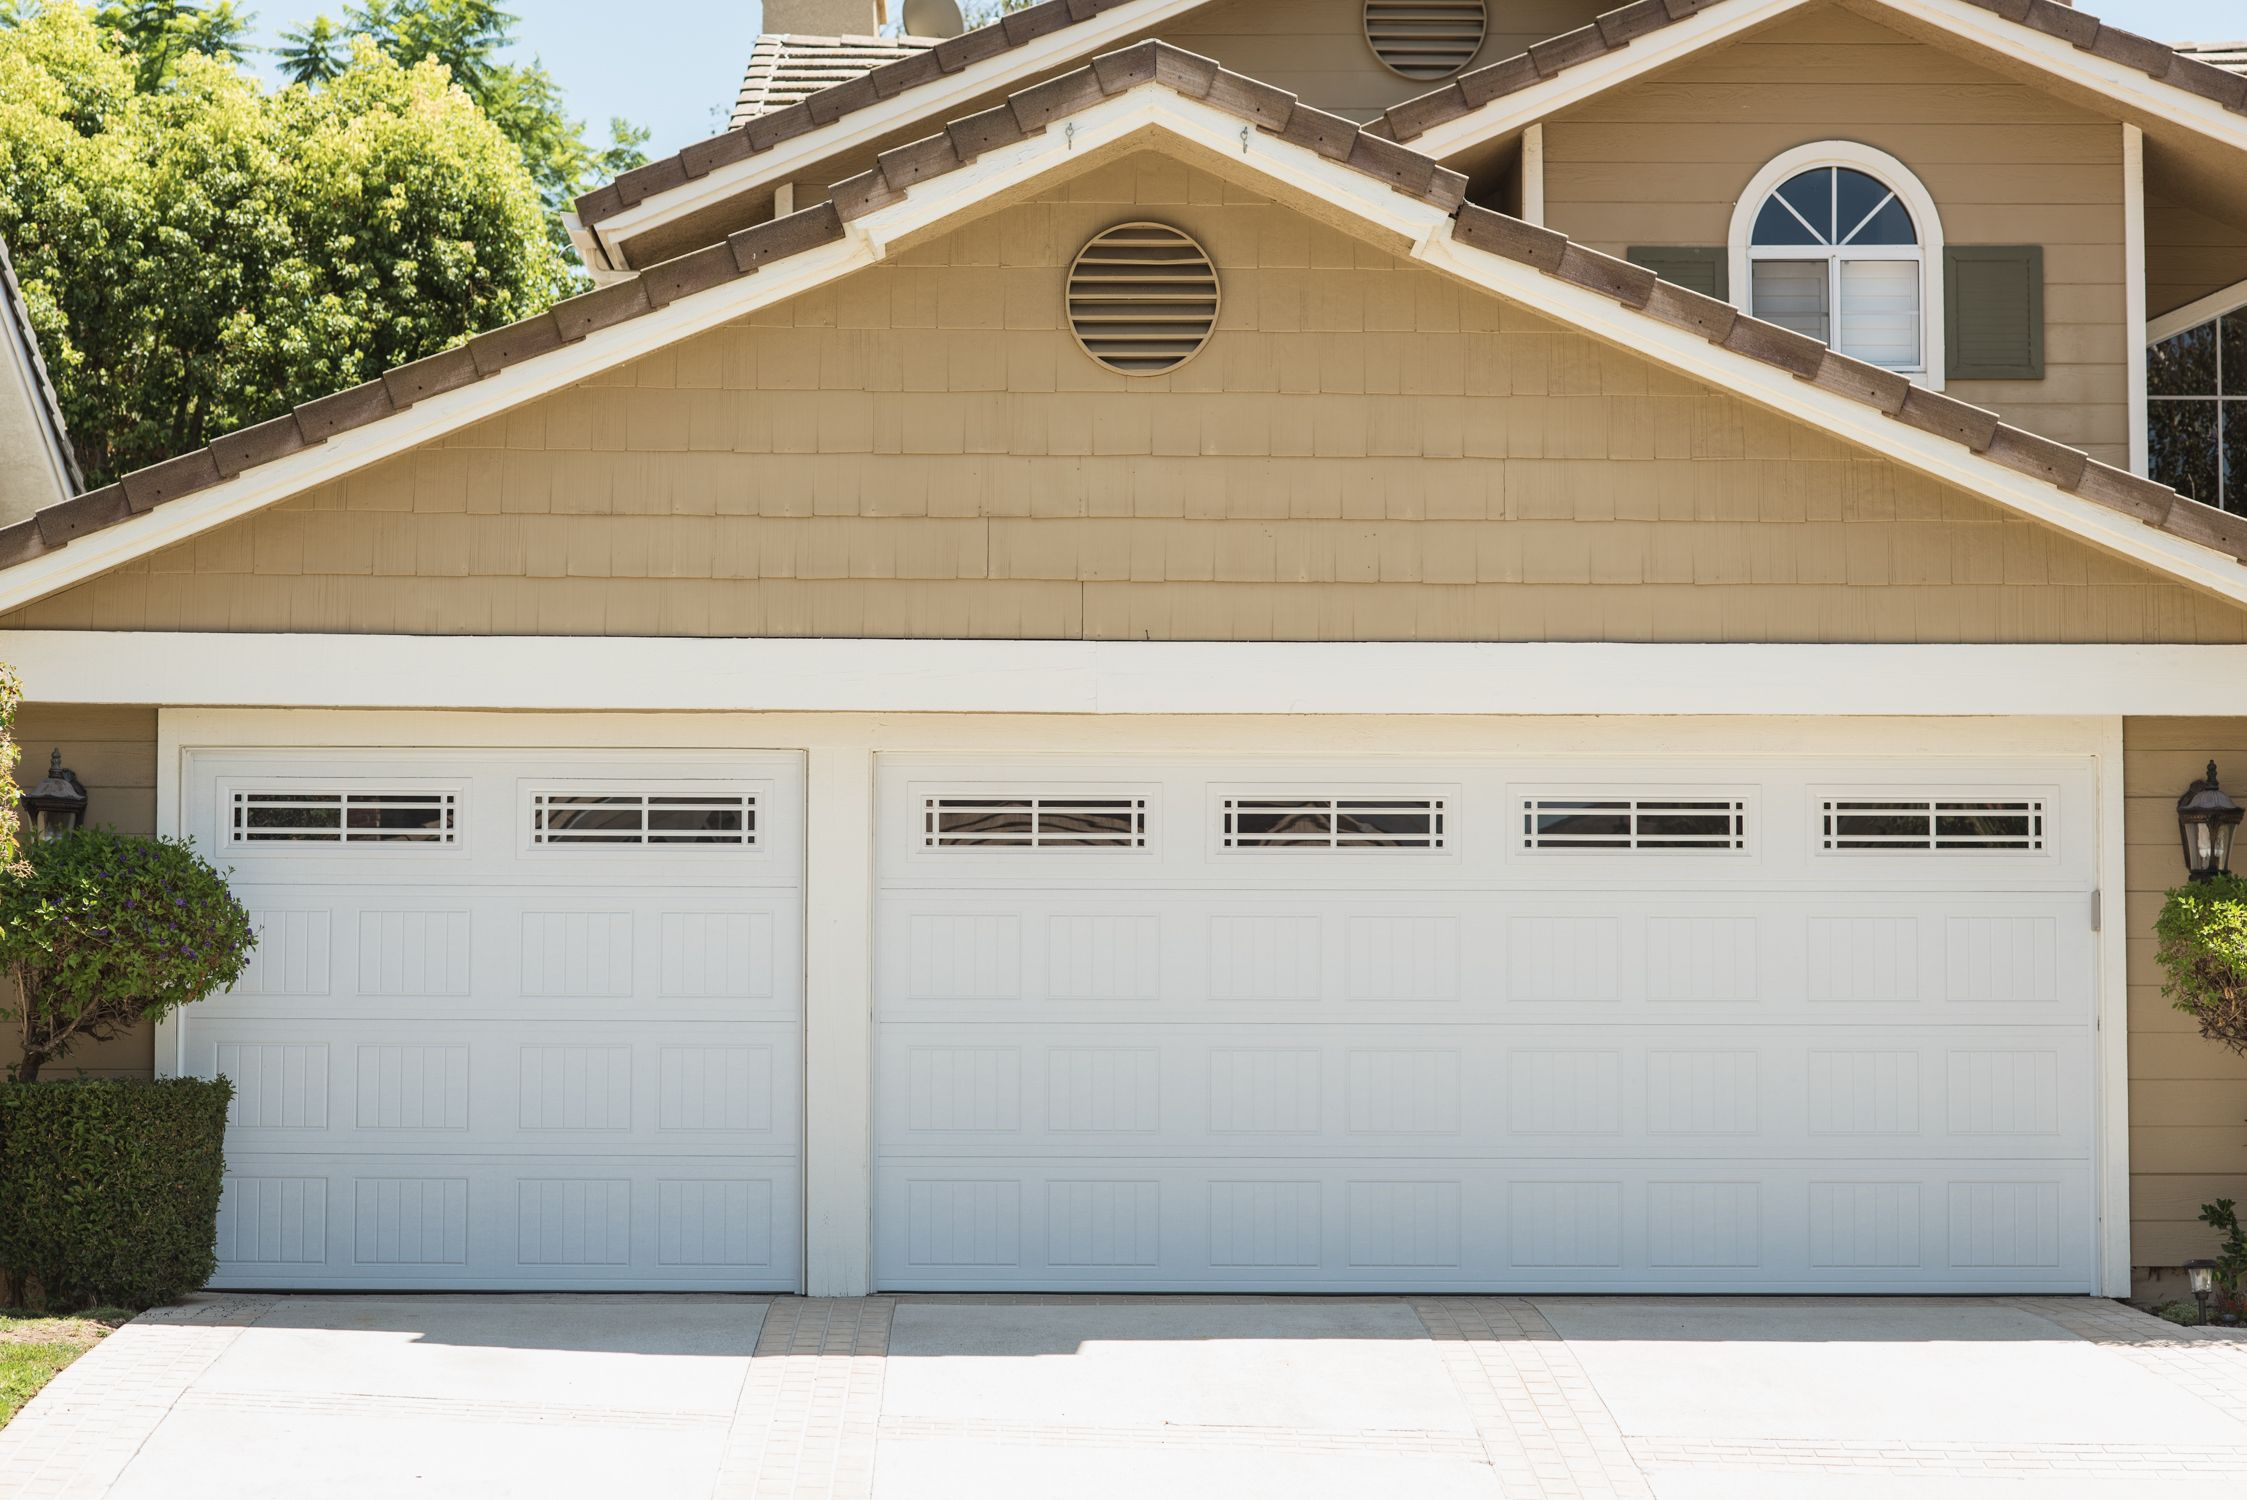 Beautiful 16 X 7 8 X 7 Wayne Dalton 8000 Sonoma Doors With Prairie 2 Windows Los Angeles C Garage Doors Garage Door Spring Repair Residential Garage Doors